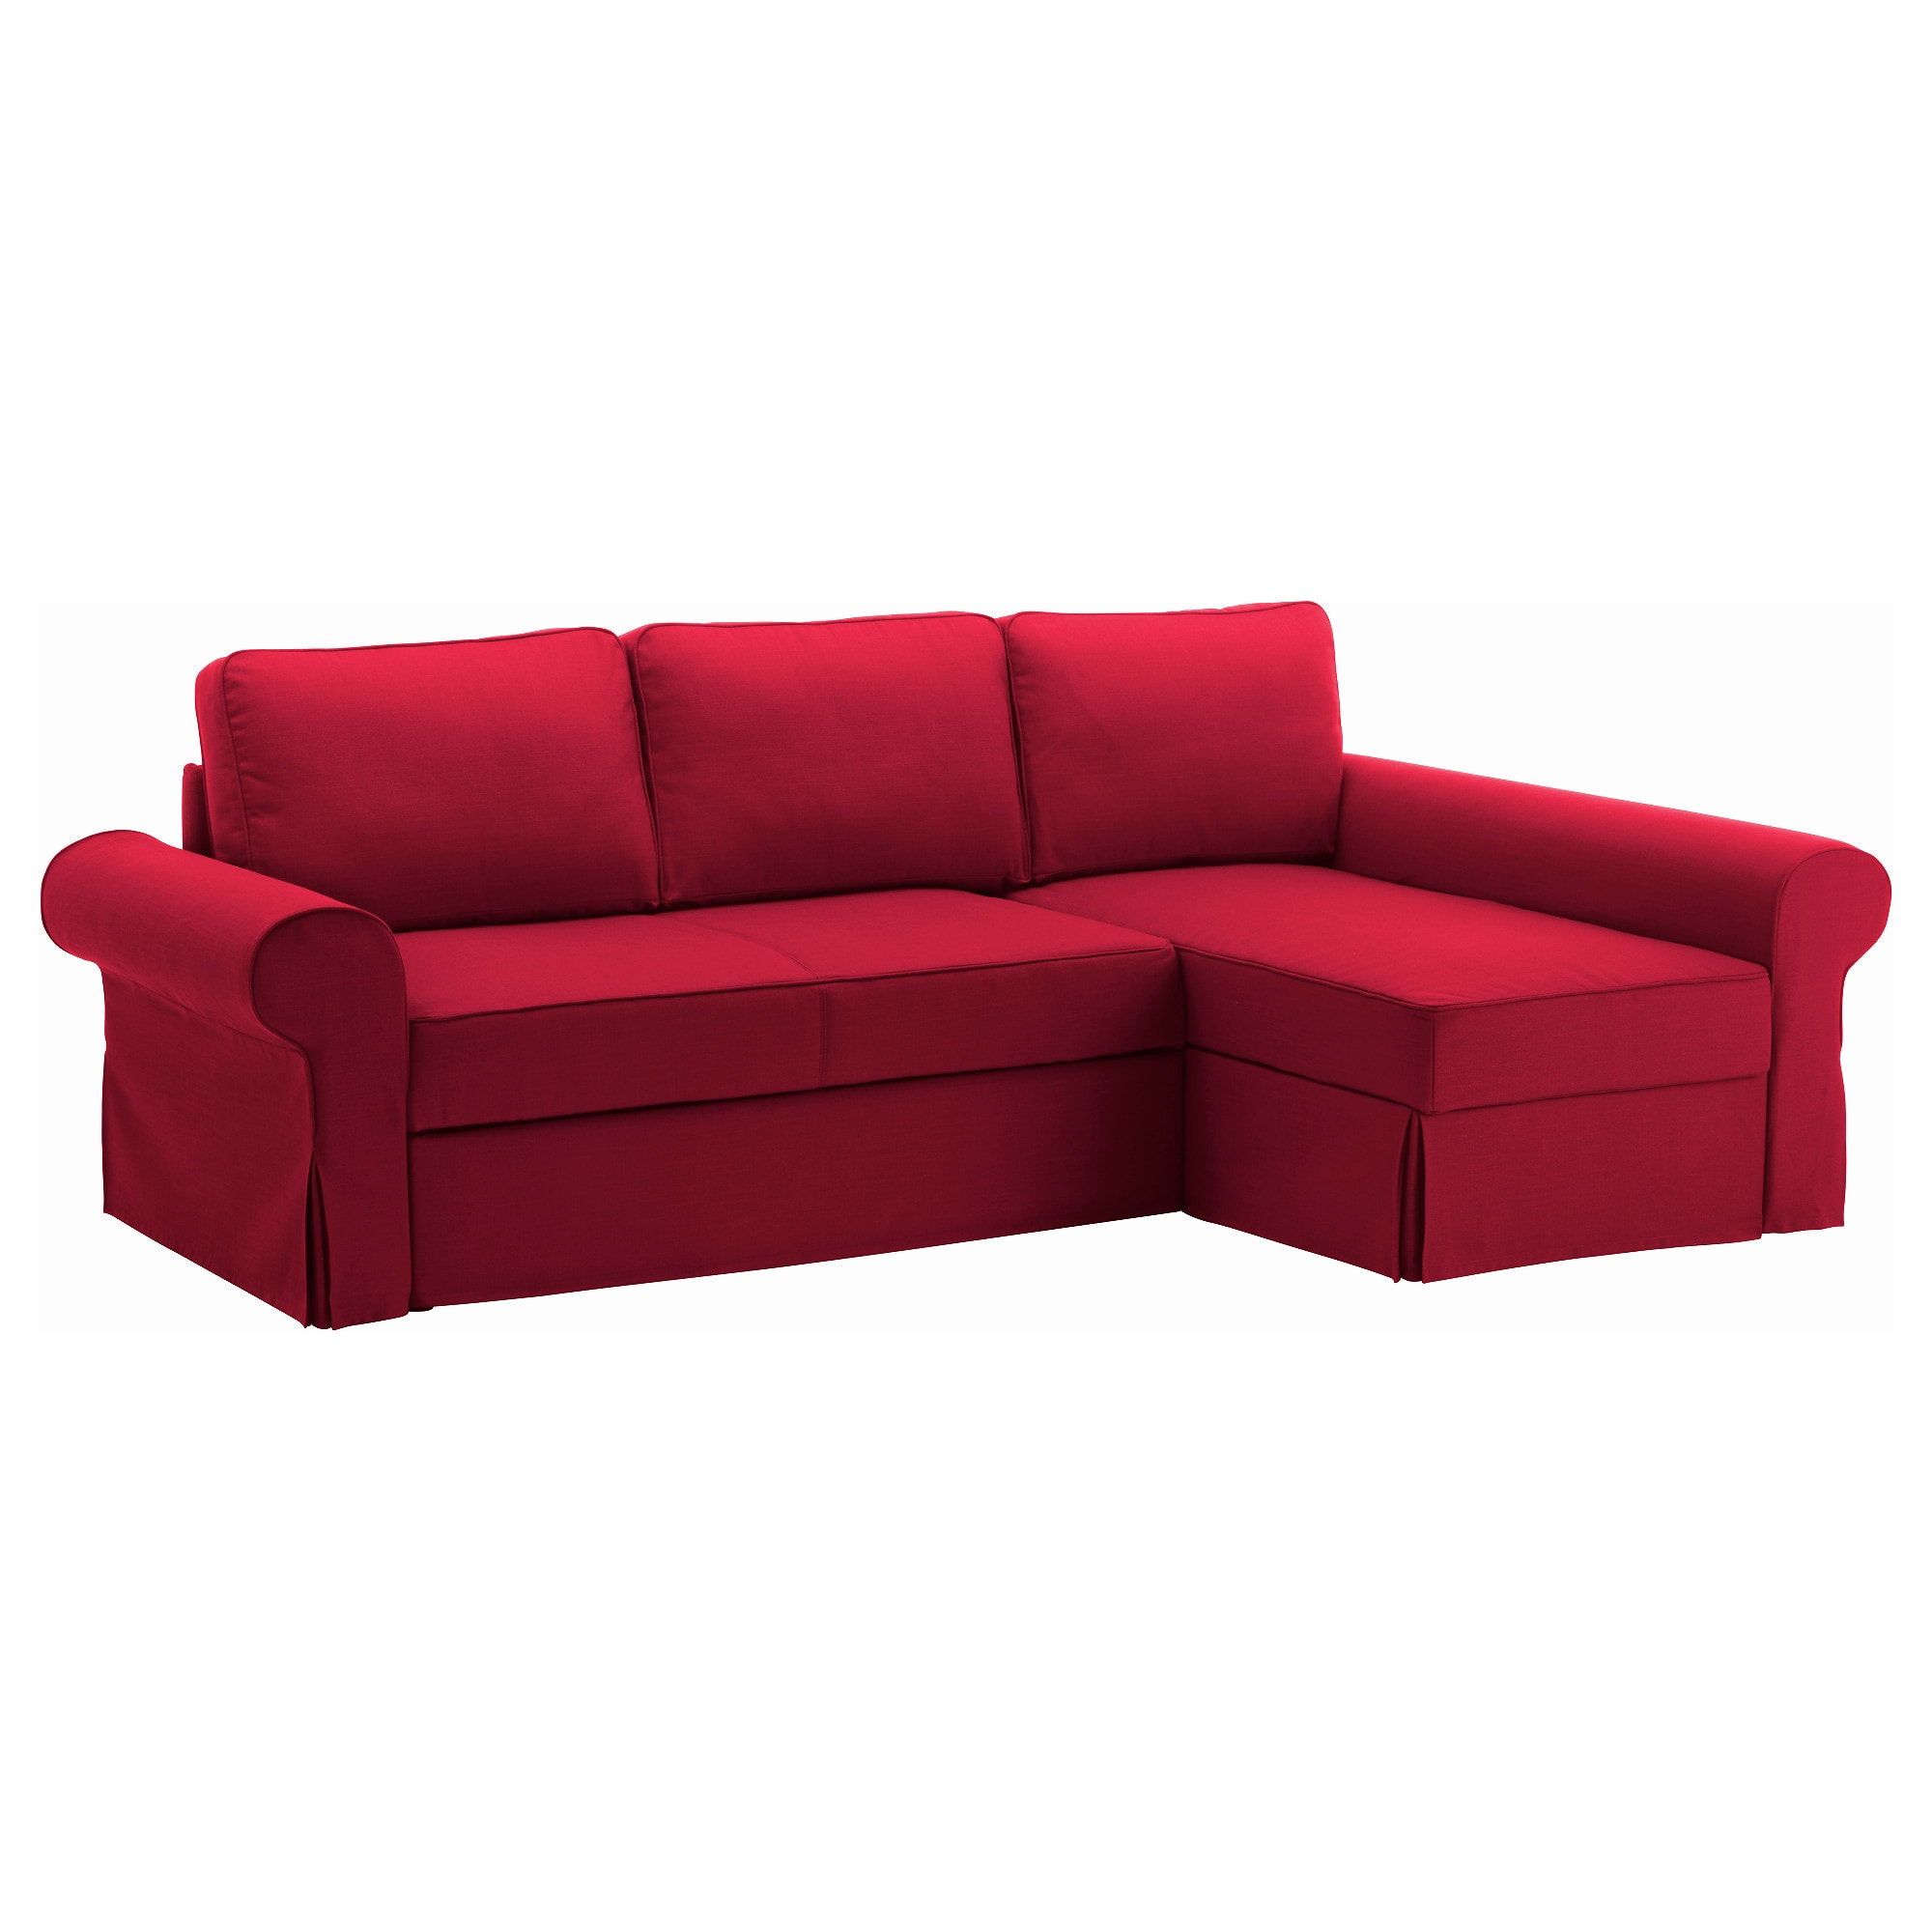 Ikea In Red Sofas And Chairs (View 7 of 20)